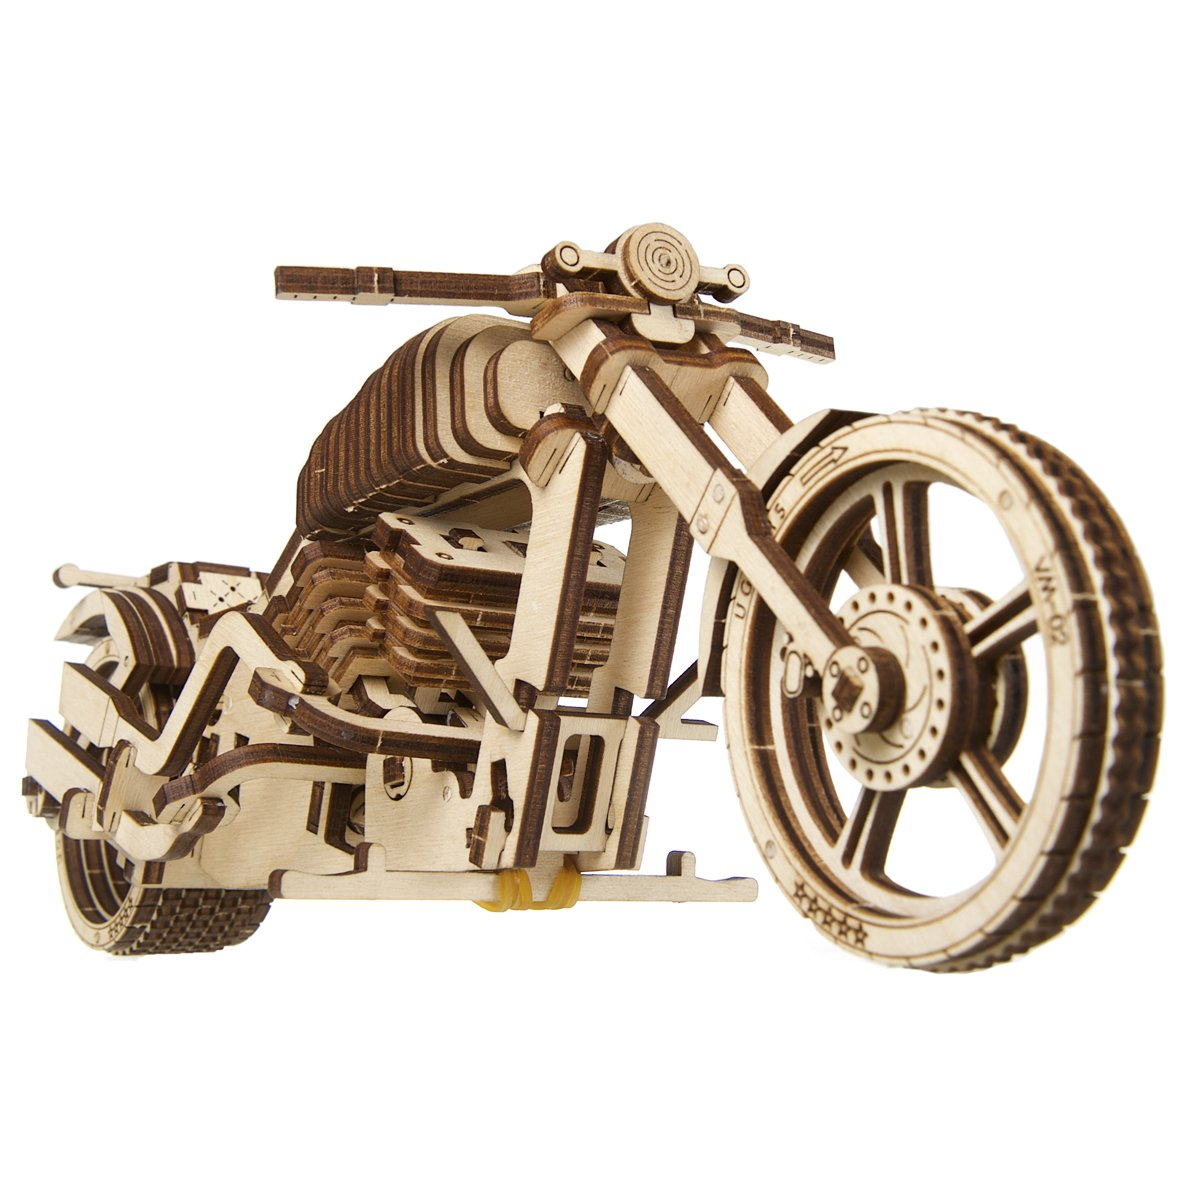 UGEARS Bike VM-02 Mechanical Wooden 3D Model Self Assembling Adult Teen Gift